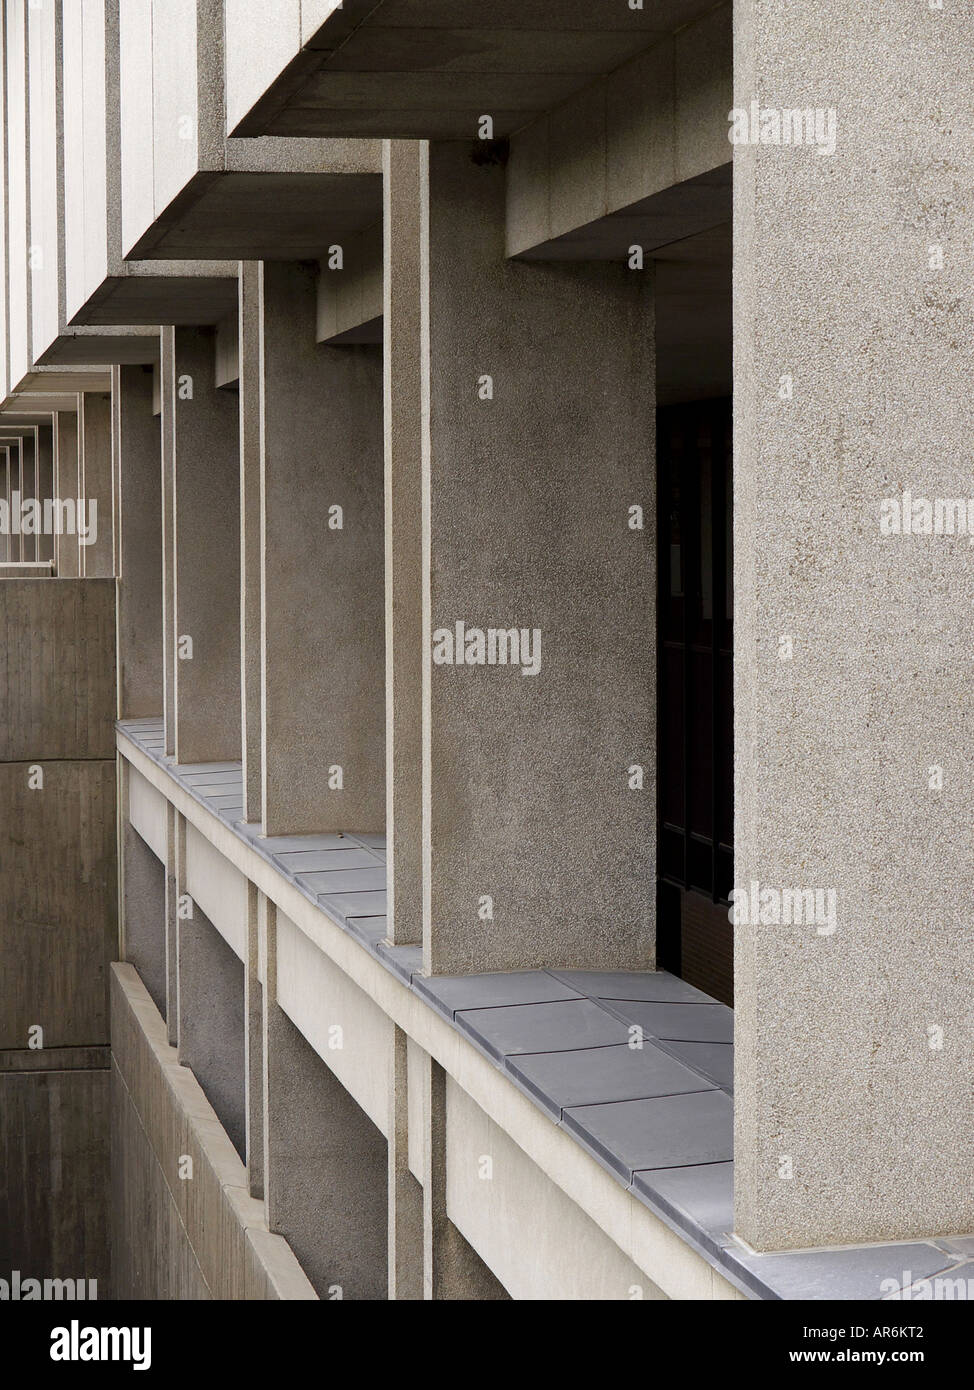 Detail of massive concrete walls and pillars on the modern